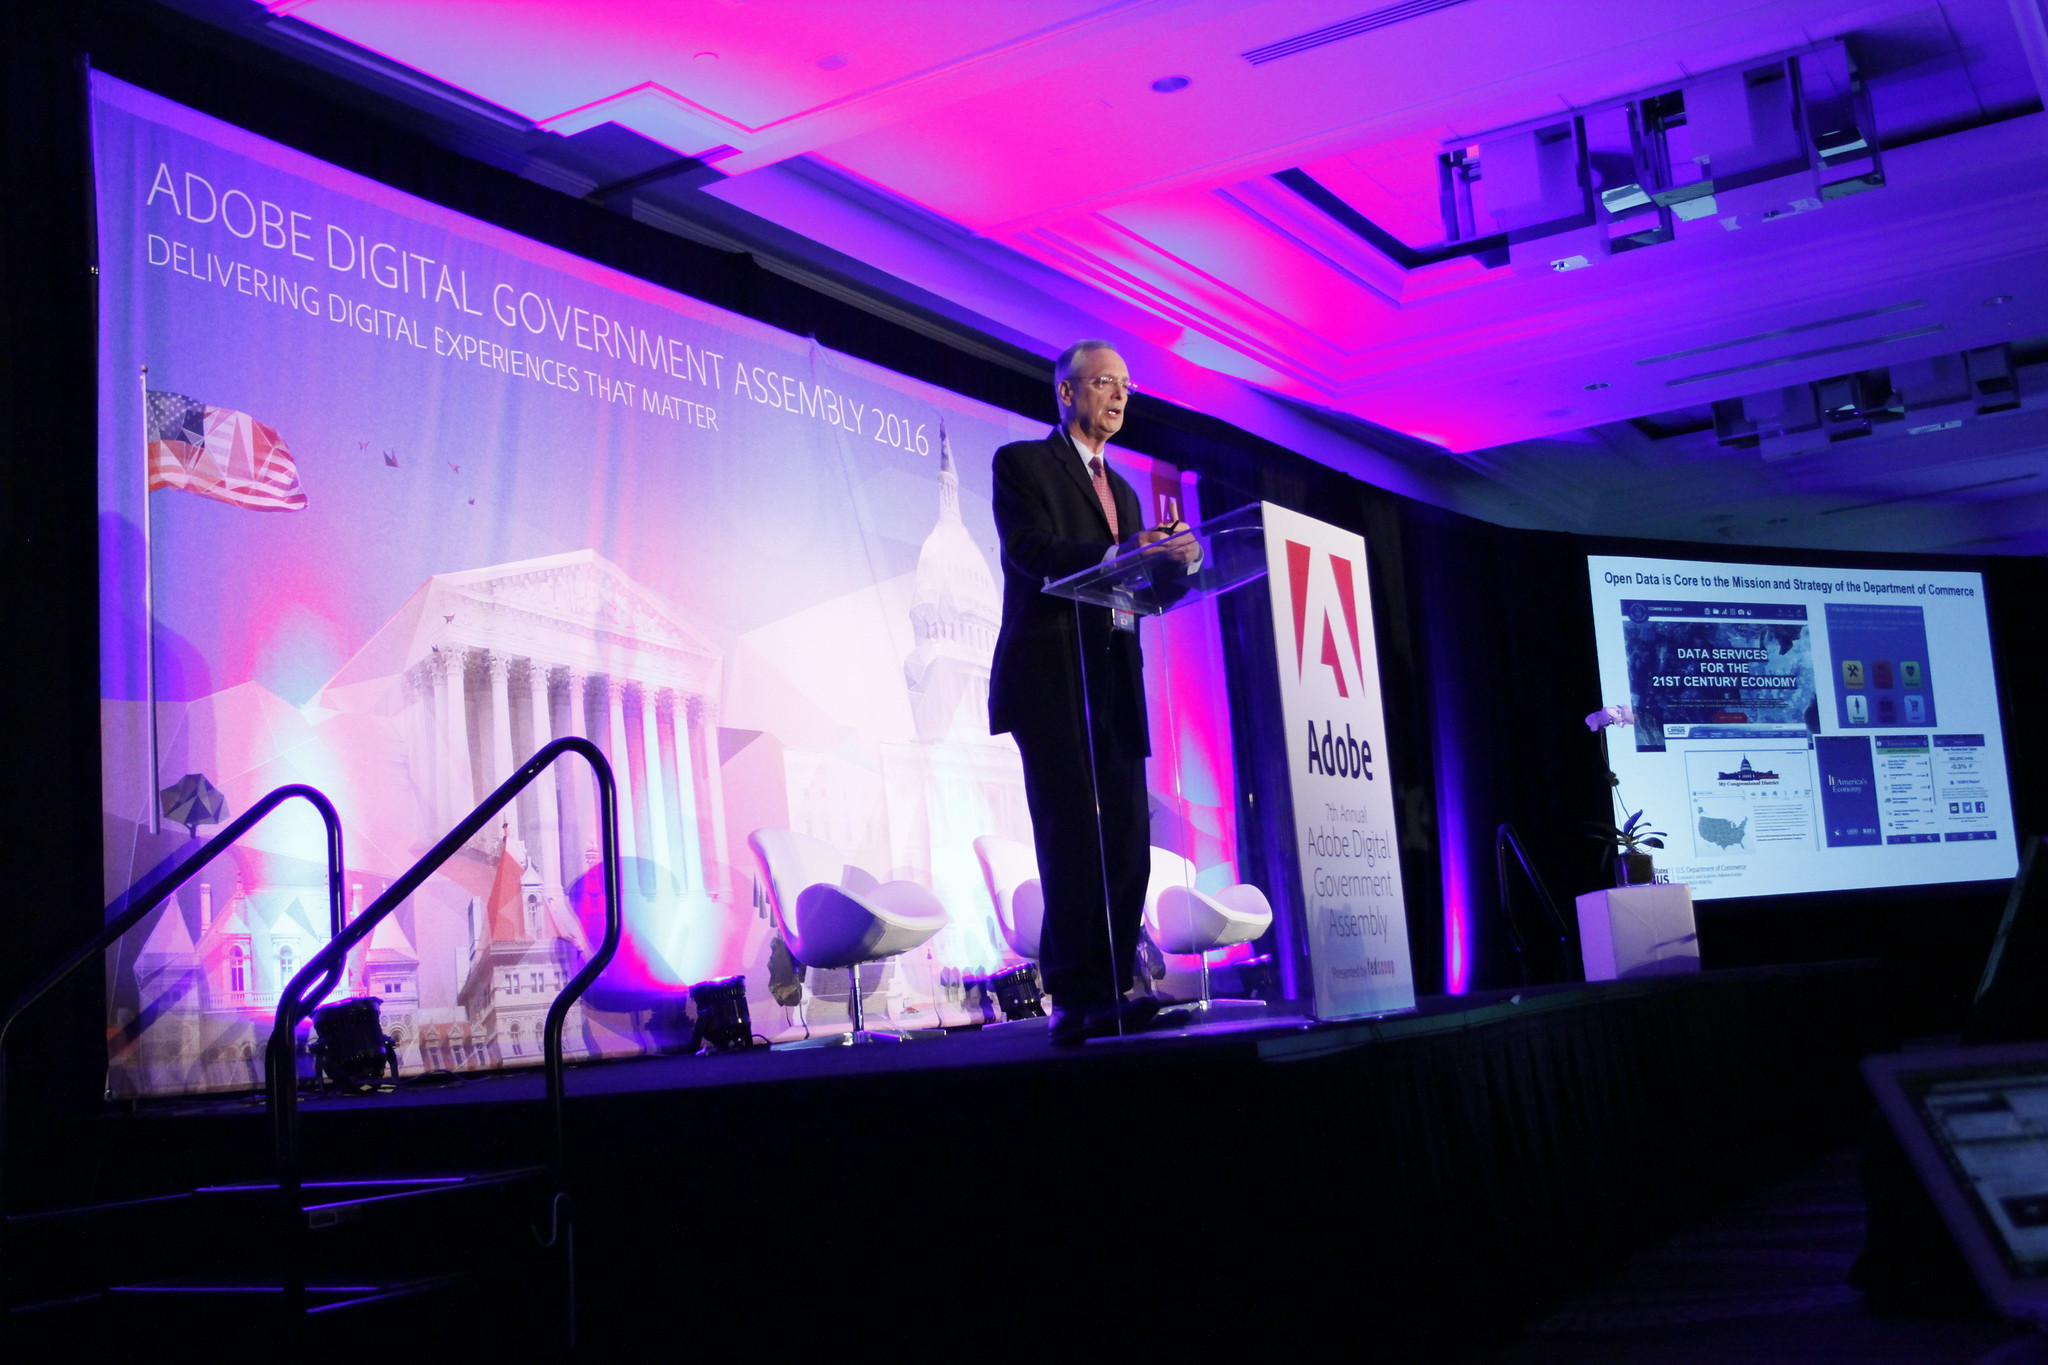 7th Annual Adobe Digital Government Assembly